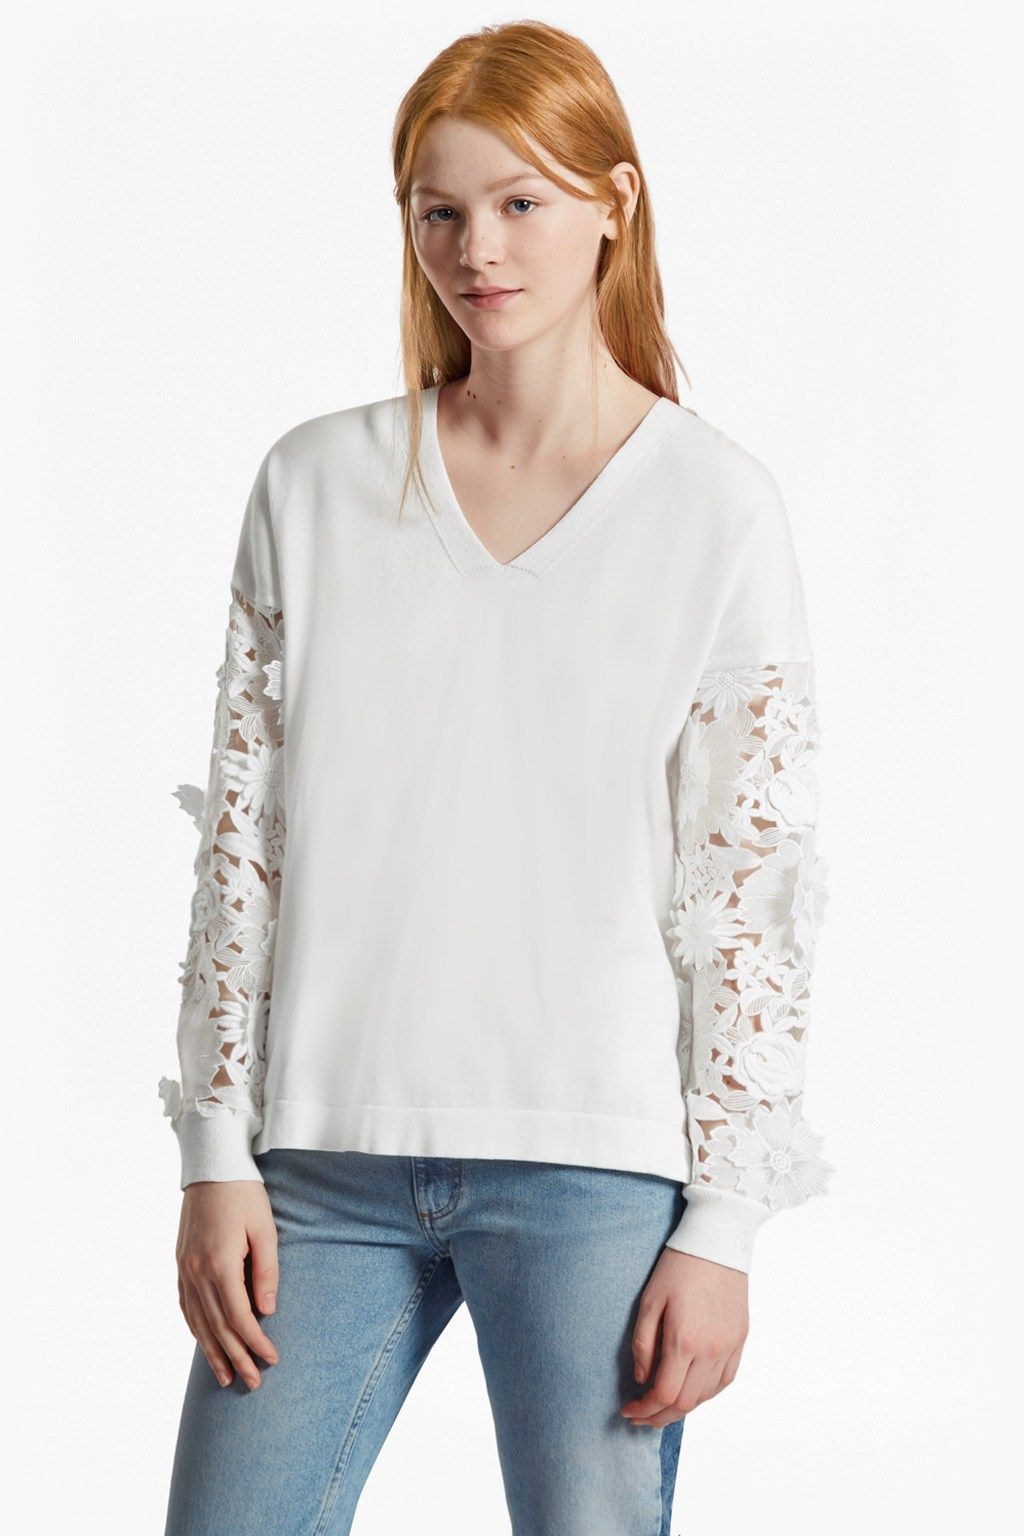 ee4d6a72d18bd Manzoni 3D Floral Lace Sleeved Jumper | Sale | French Connection Usa French  Connection Women's Sale